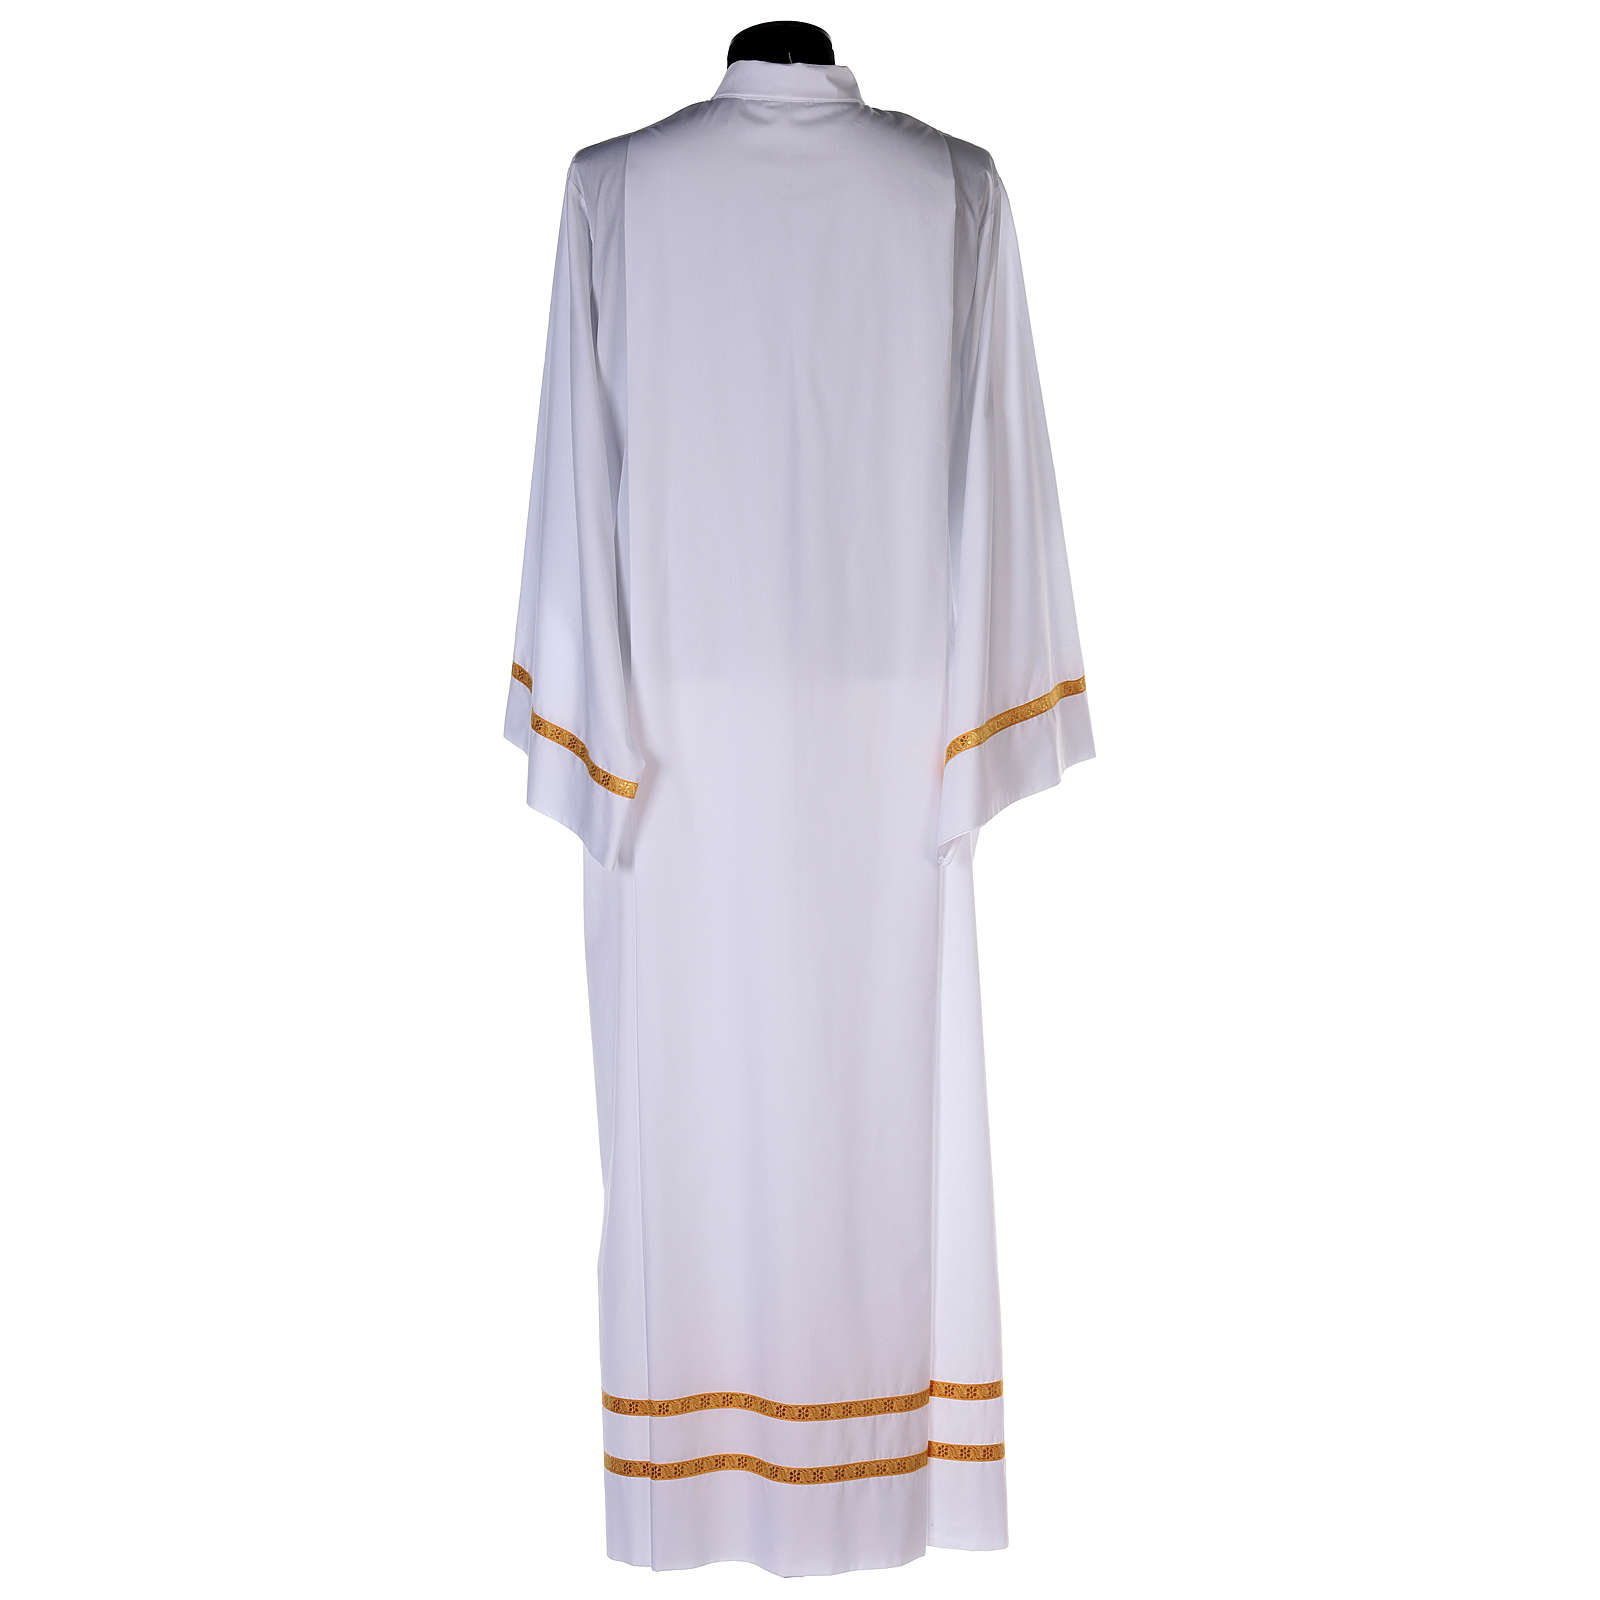 Monastic Alb with pleats and golden border and sleeves 4